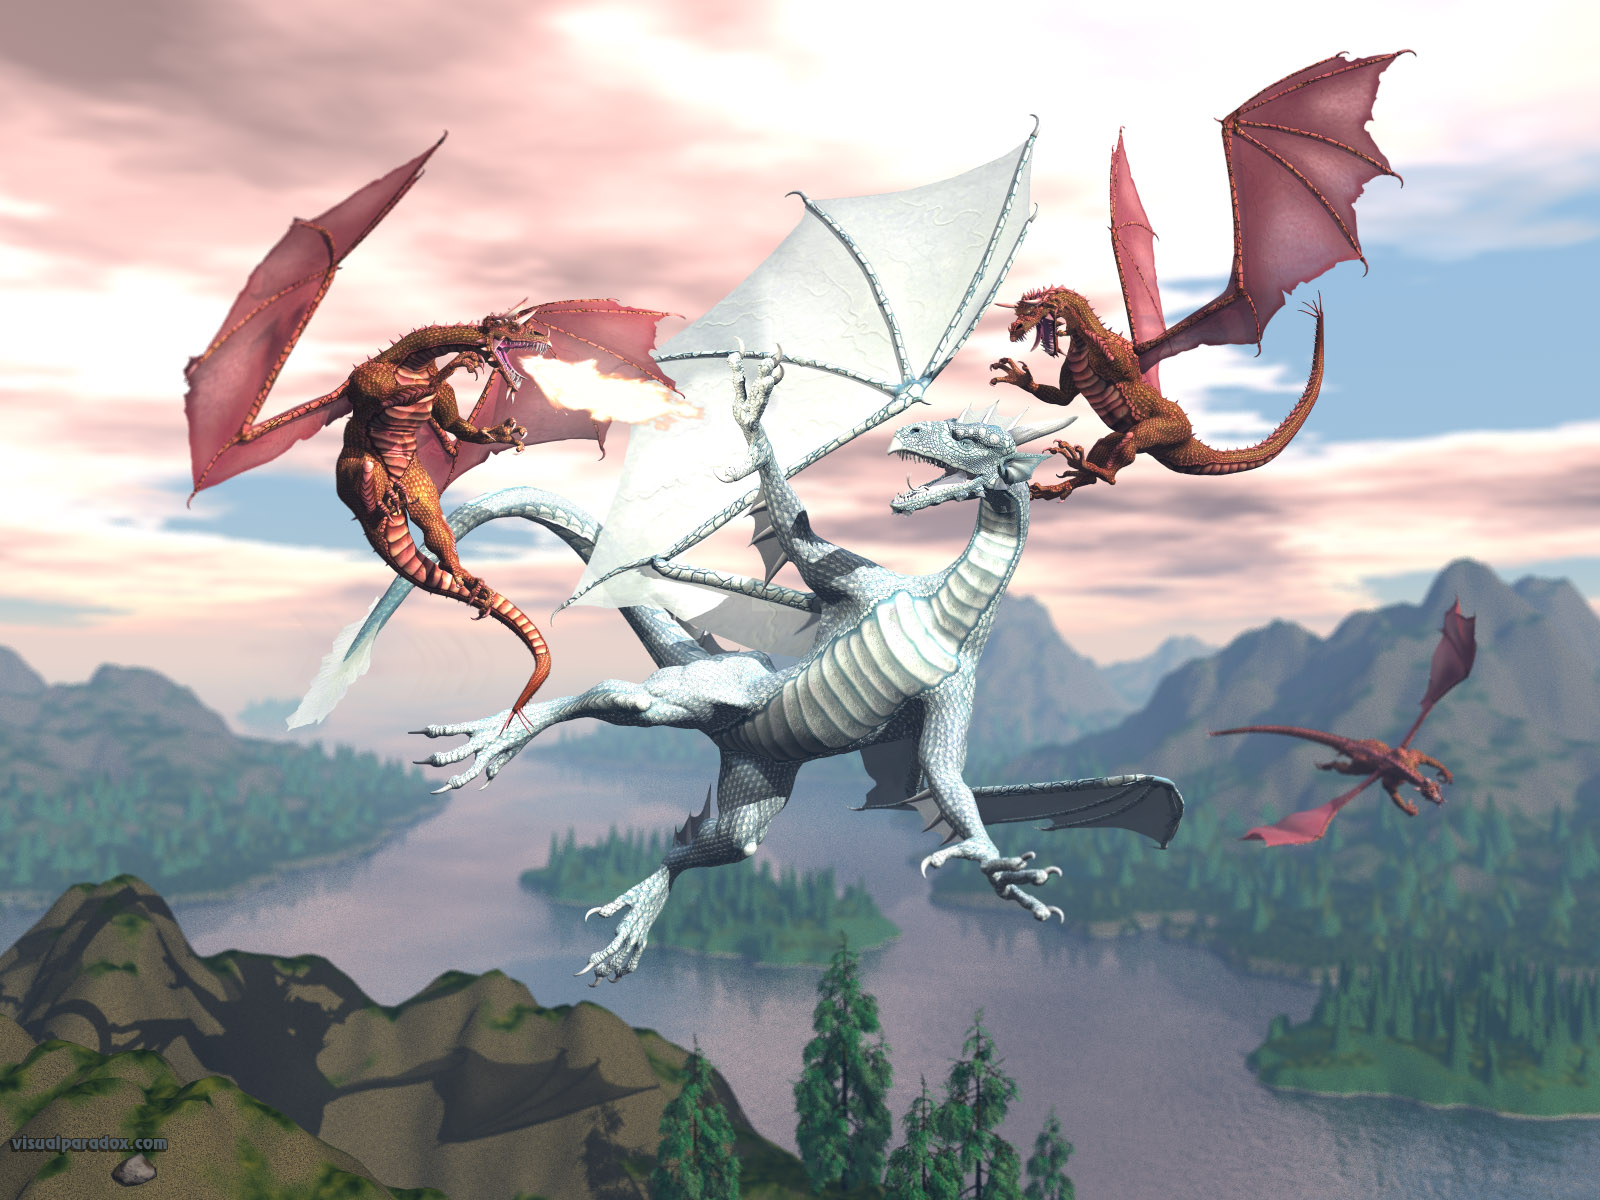 dragon, fight, attack,ambush, breath, blow,draco, frost, flame,dragons, red, blue, 3d, wallpaper